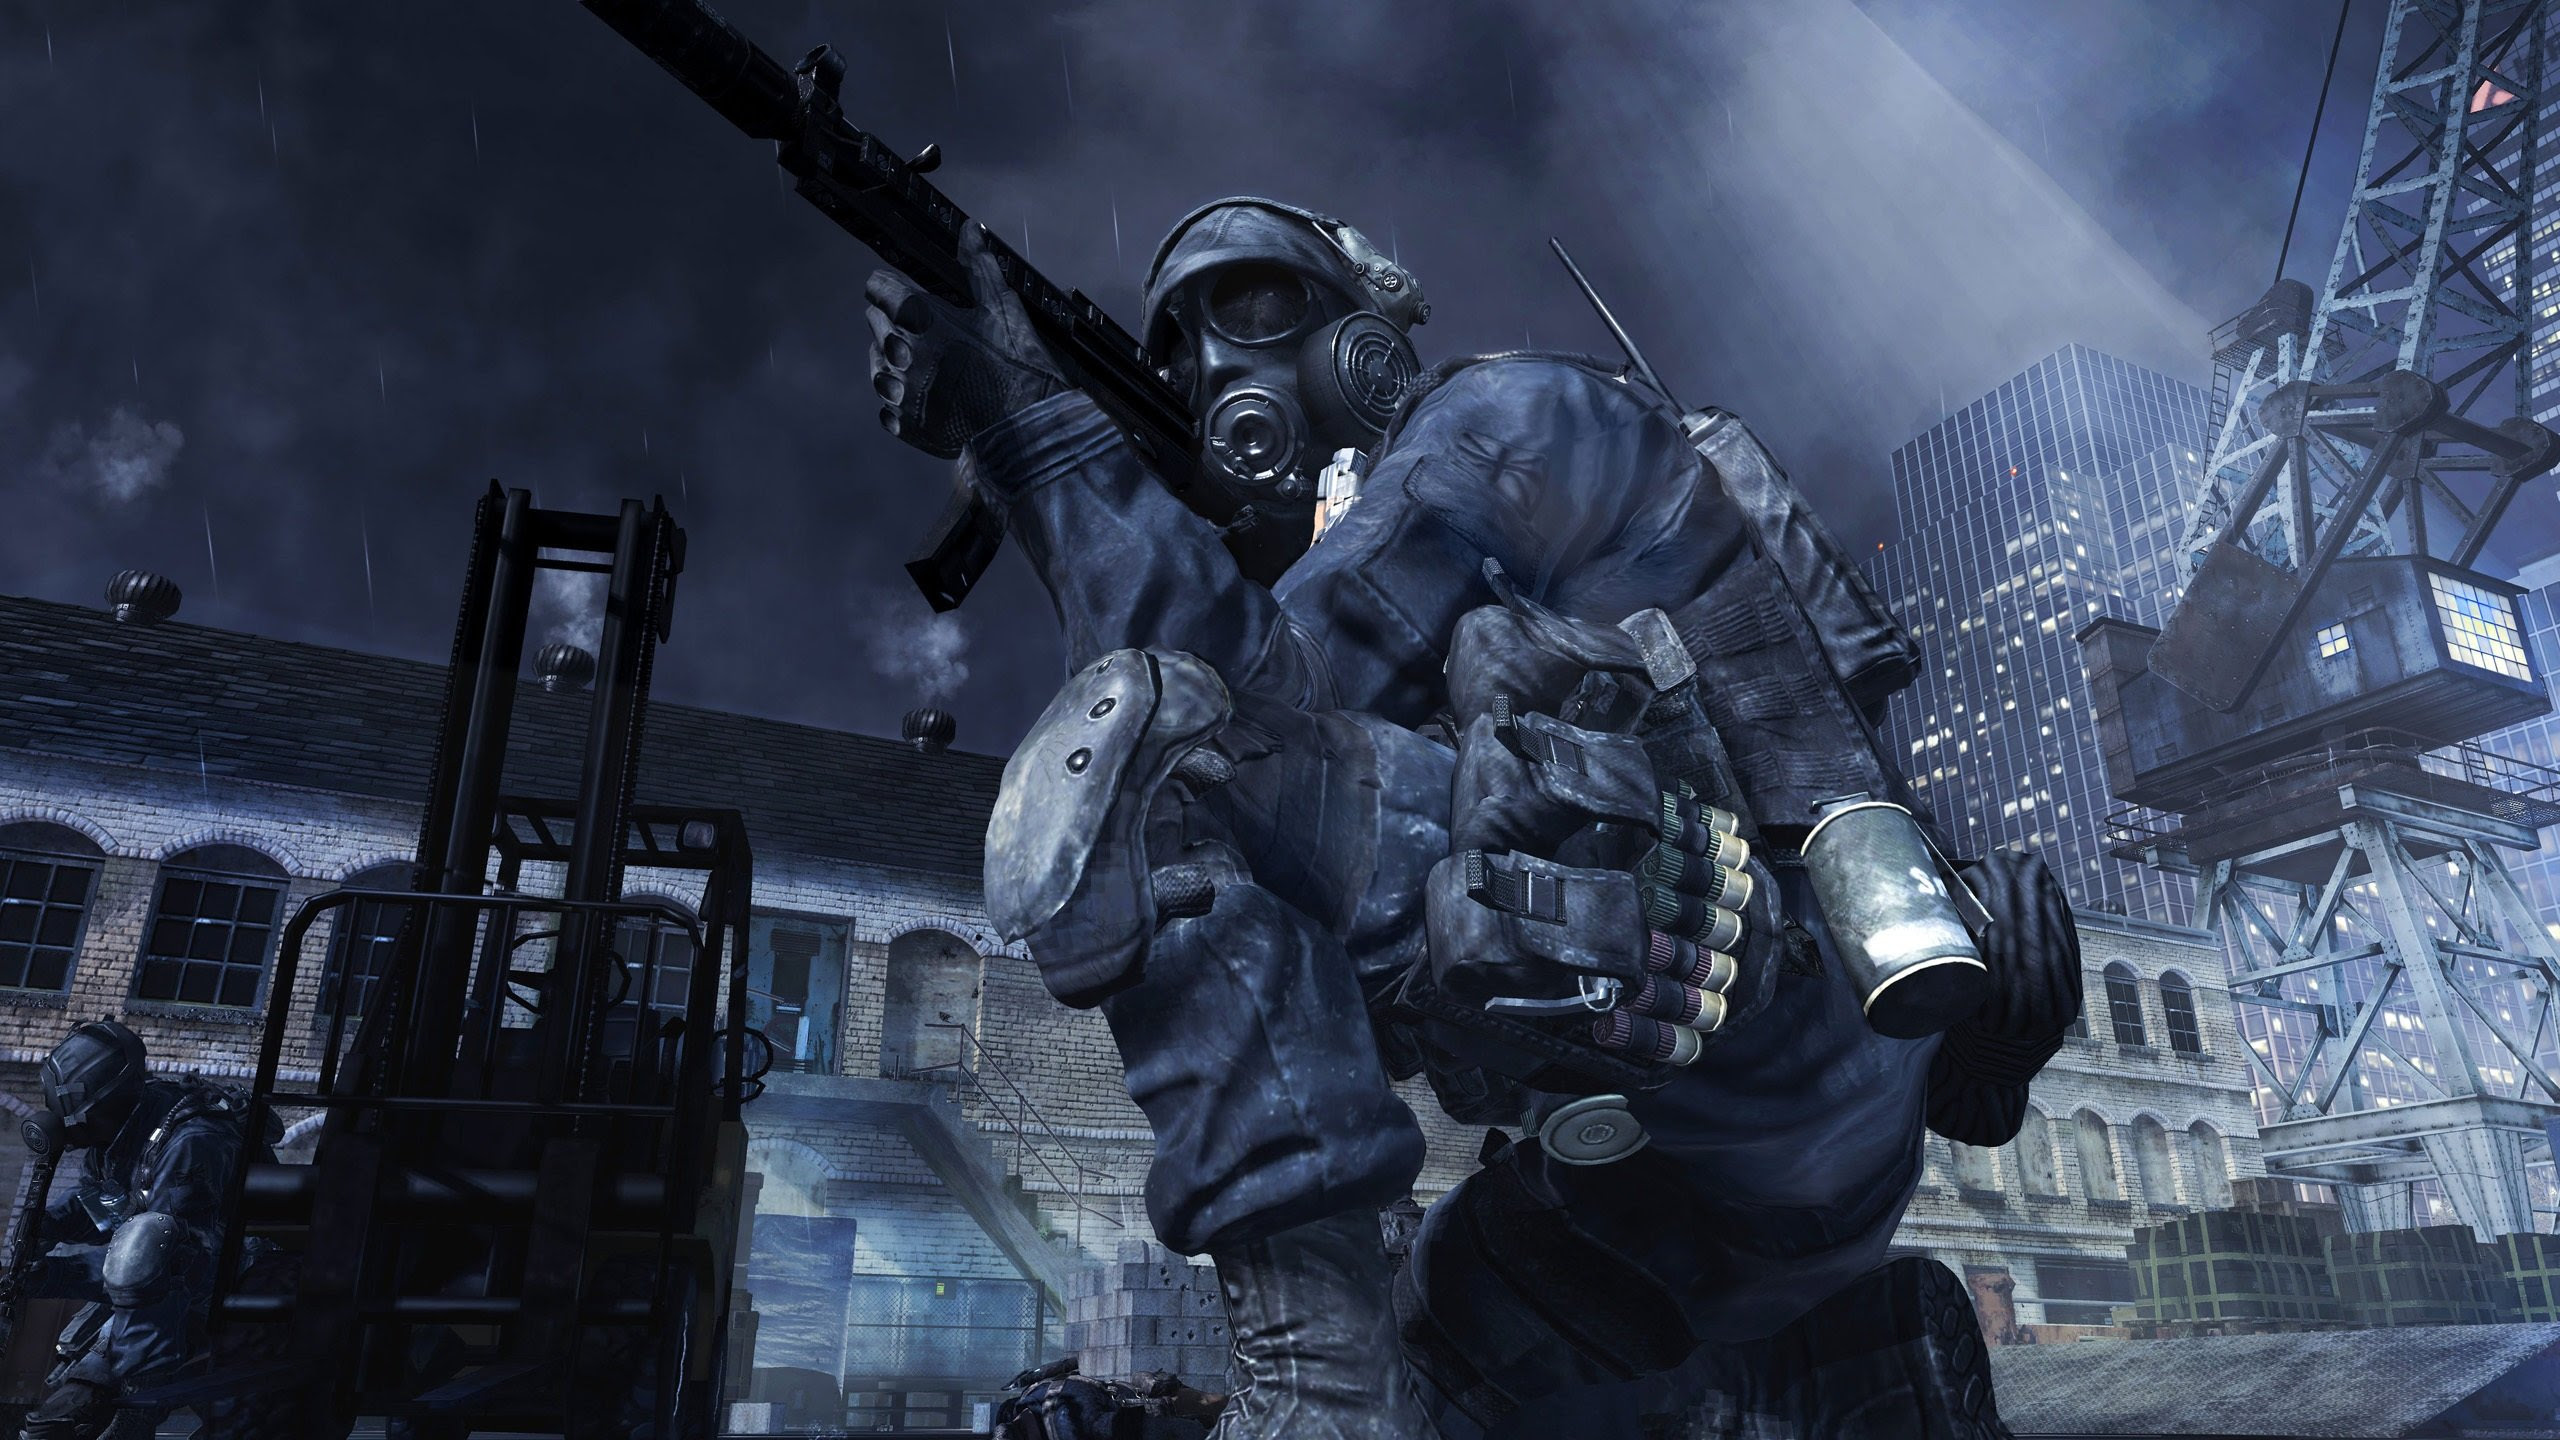 Call Of Duty Modern Warfare Hd Wallpapers Backgrounds 2560x1440